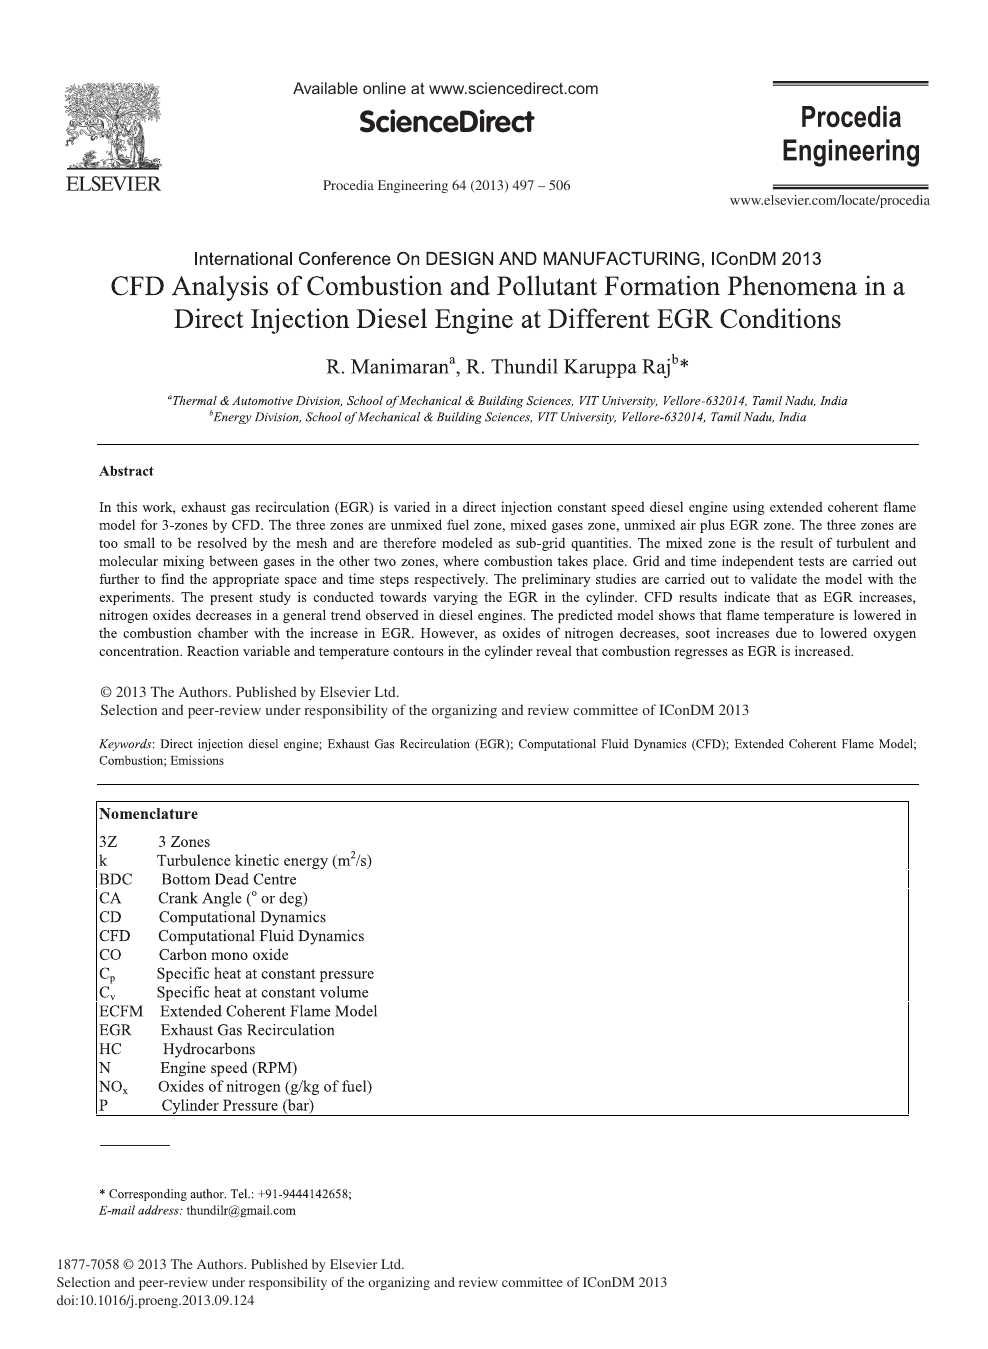 CFD Analysis of Combustion and Pollutant Formation Phenomena in a